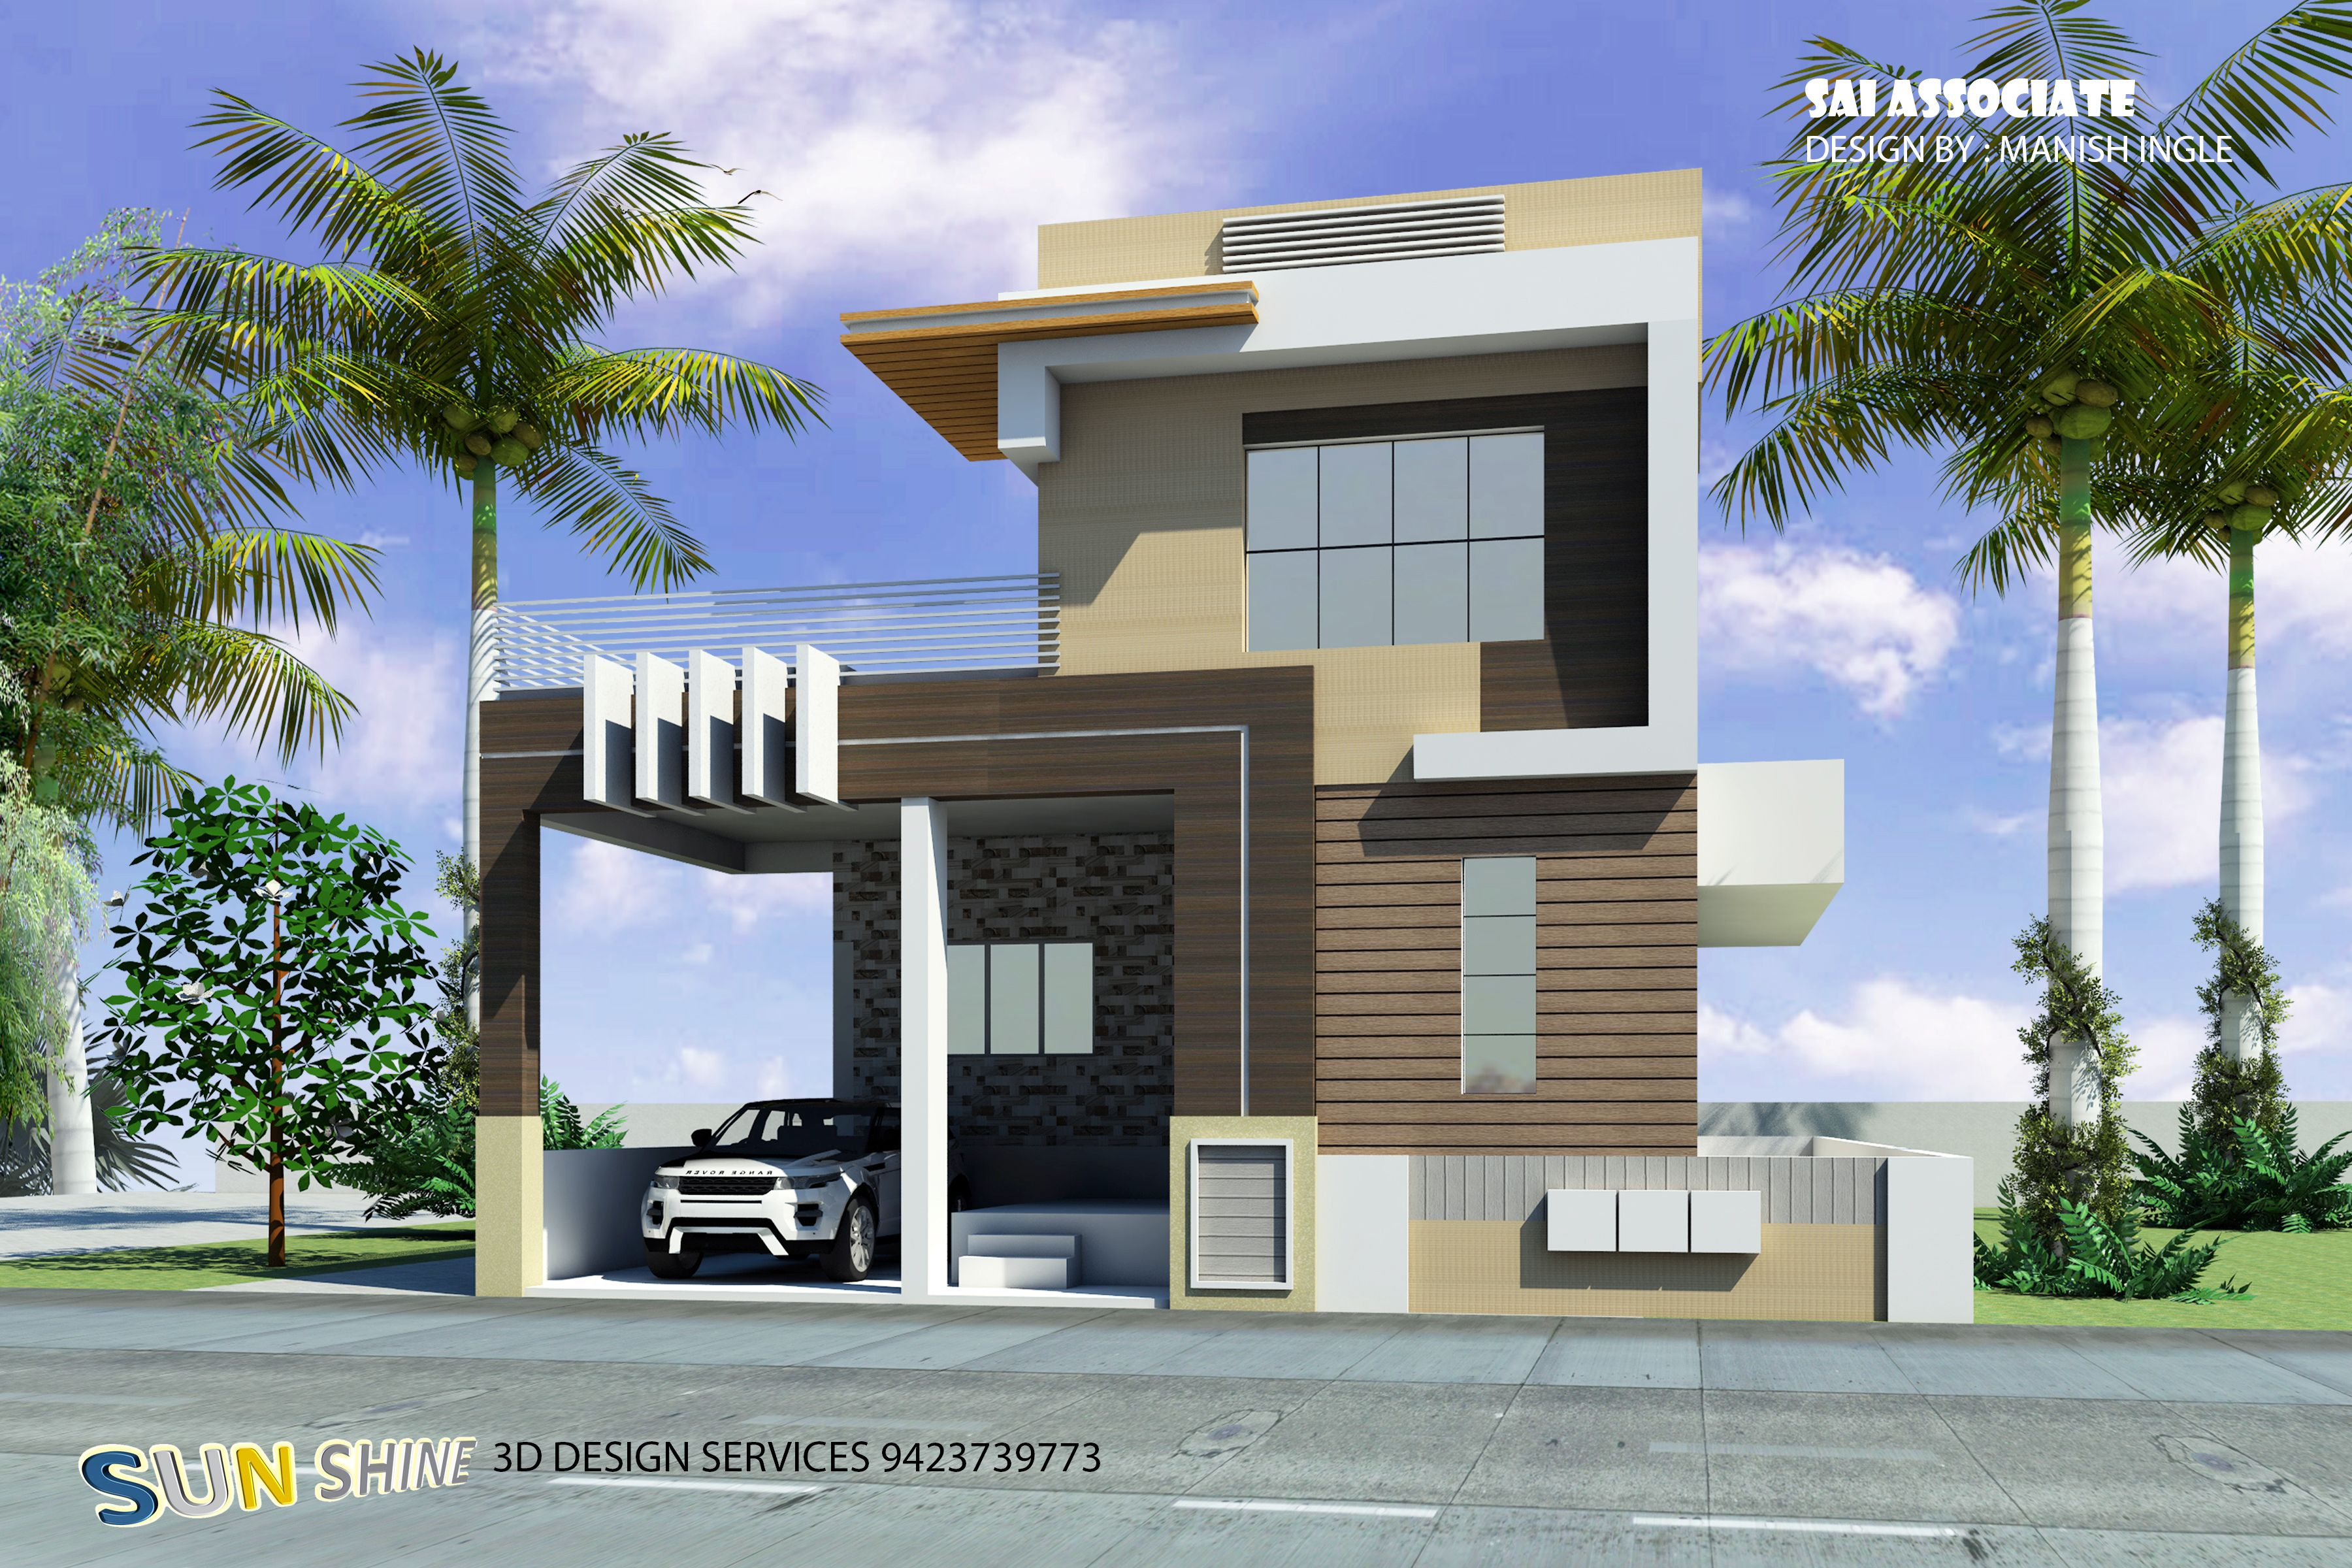 2 Bhk Home Design Single Floor With Staircase Tower Small House Design Small House Design Architecture Village House Design